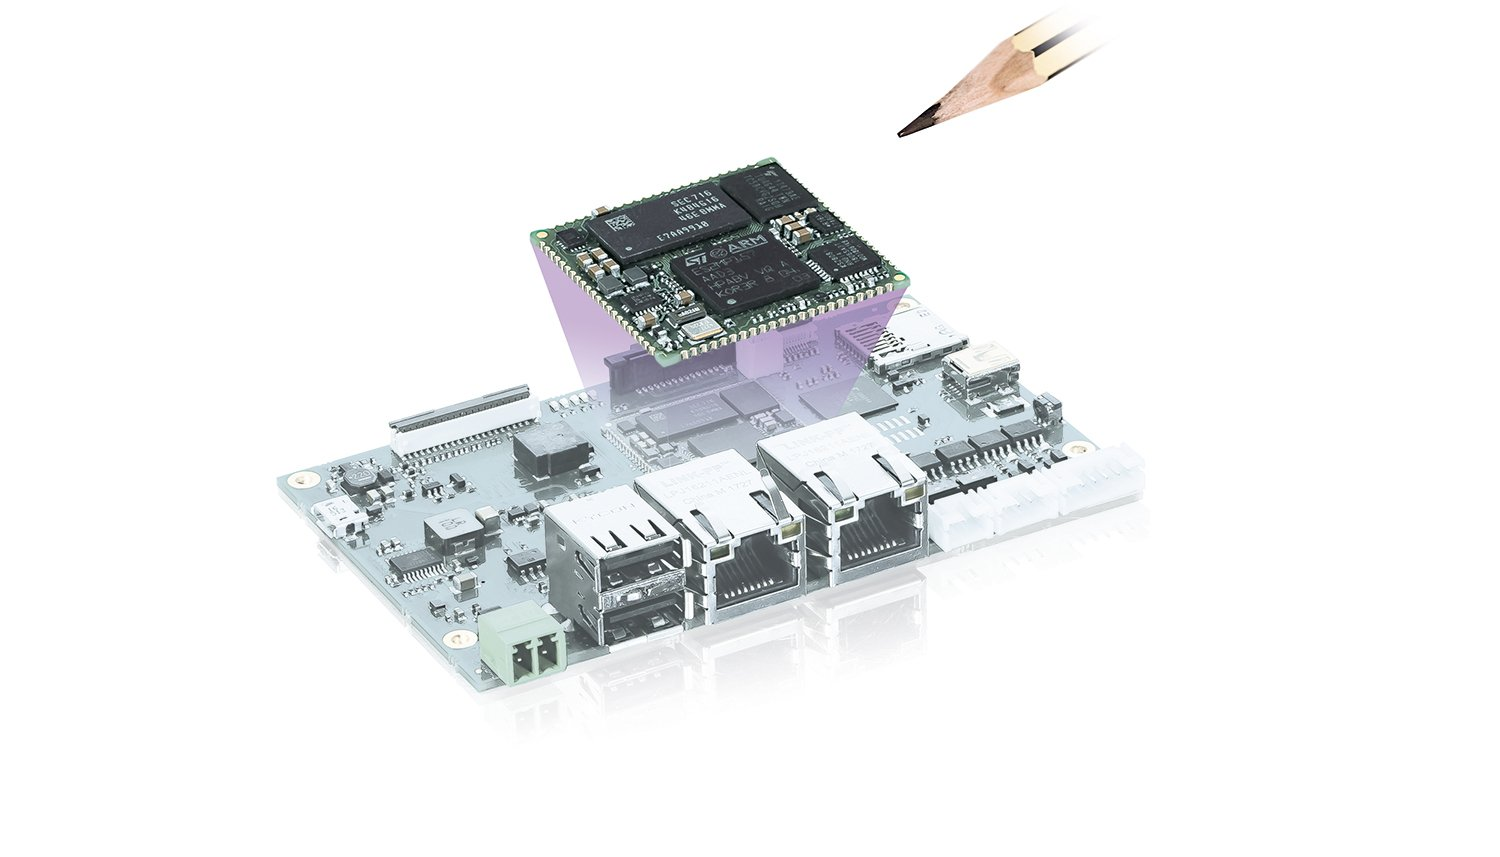 Kontron Presents SOM Based on the New STM32MP157 by STMicroelectronics